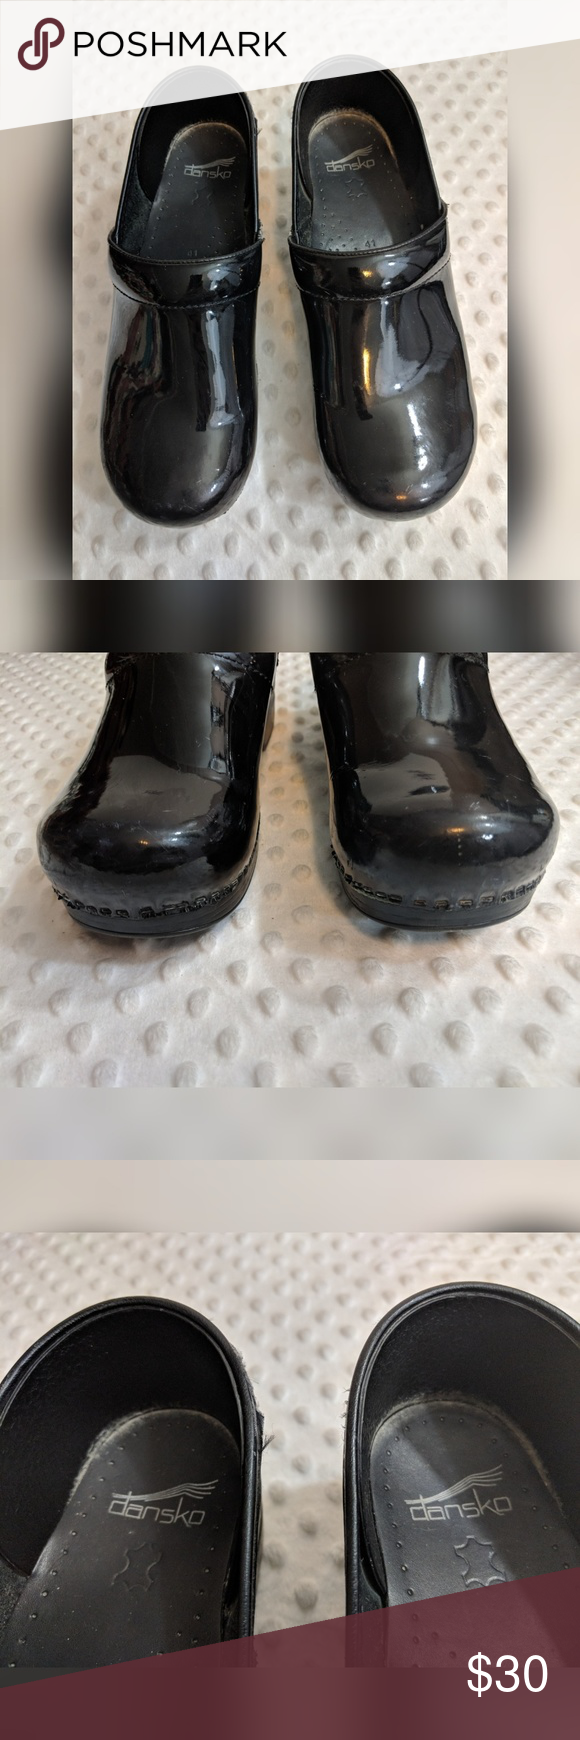 Dansko Size Chart States 41 10 5 11 Used Condition With Wear Shown In Photos Some Scuffs And Trim Shoes